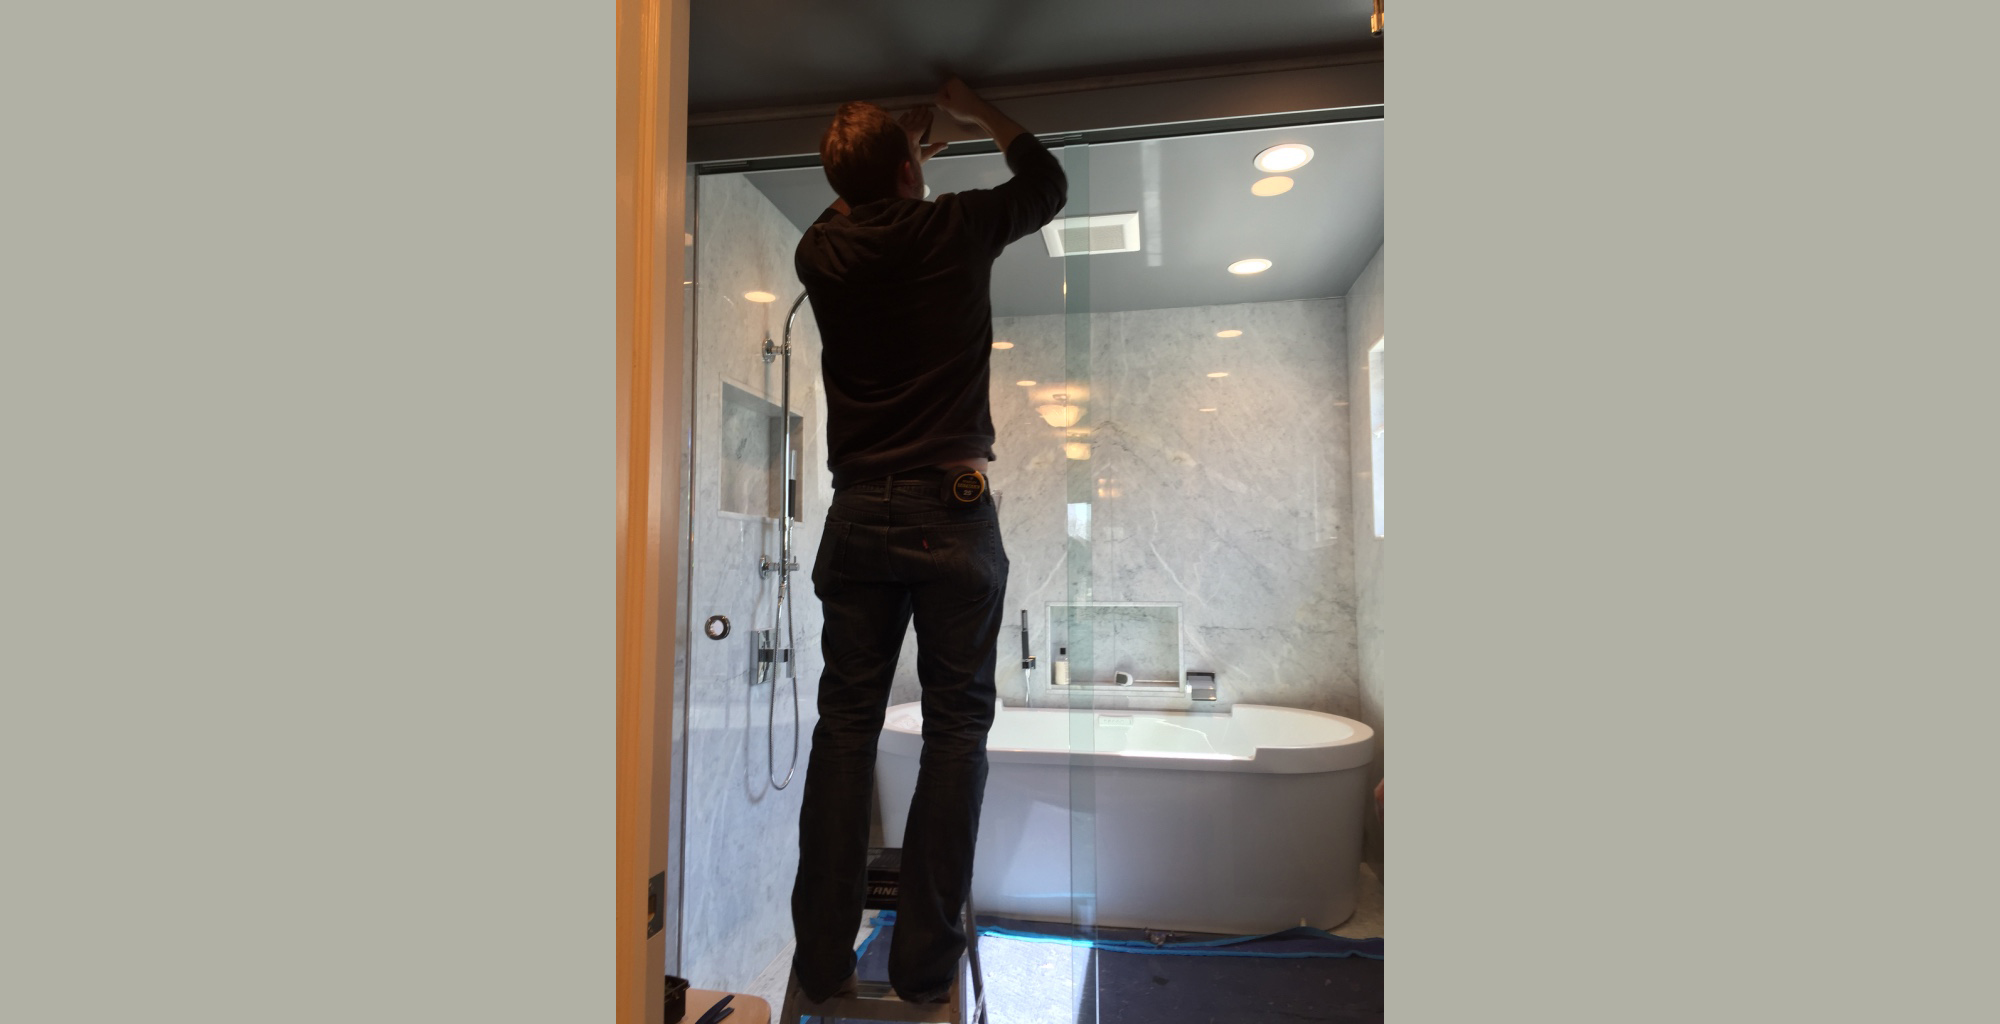 Week 7 Bathroom Renovation | Sam Kellogg